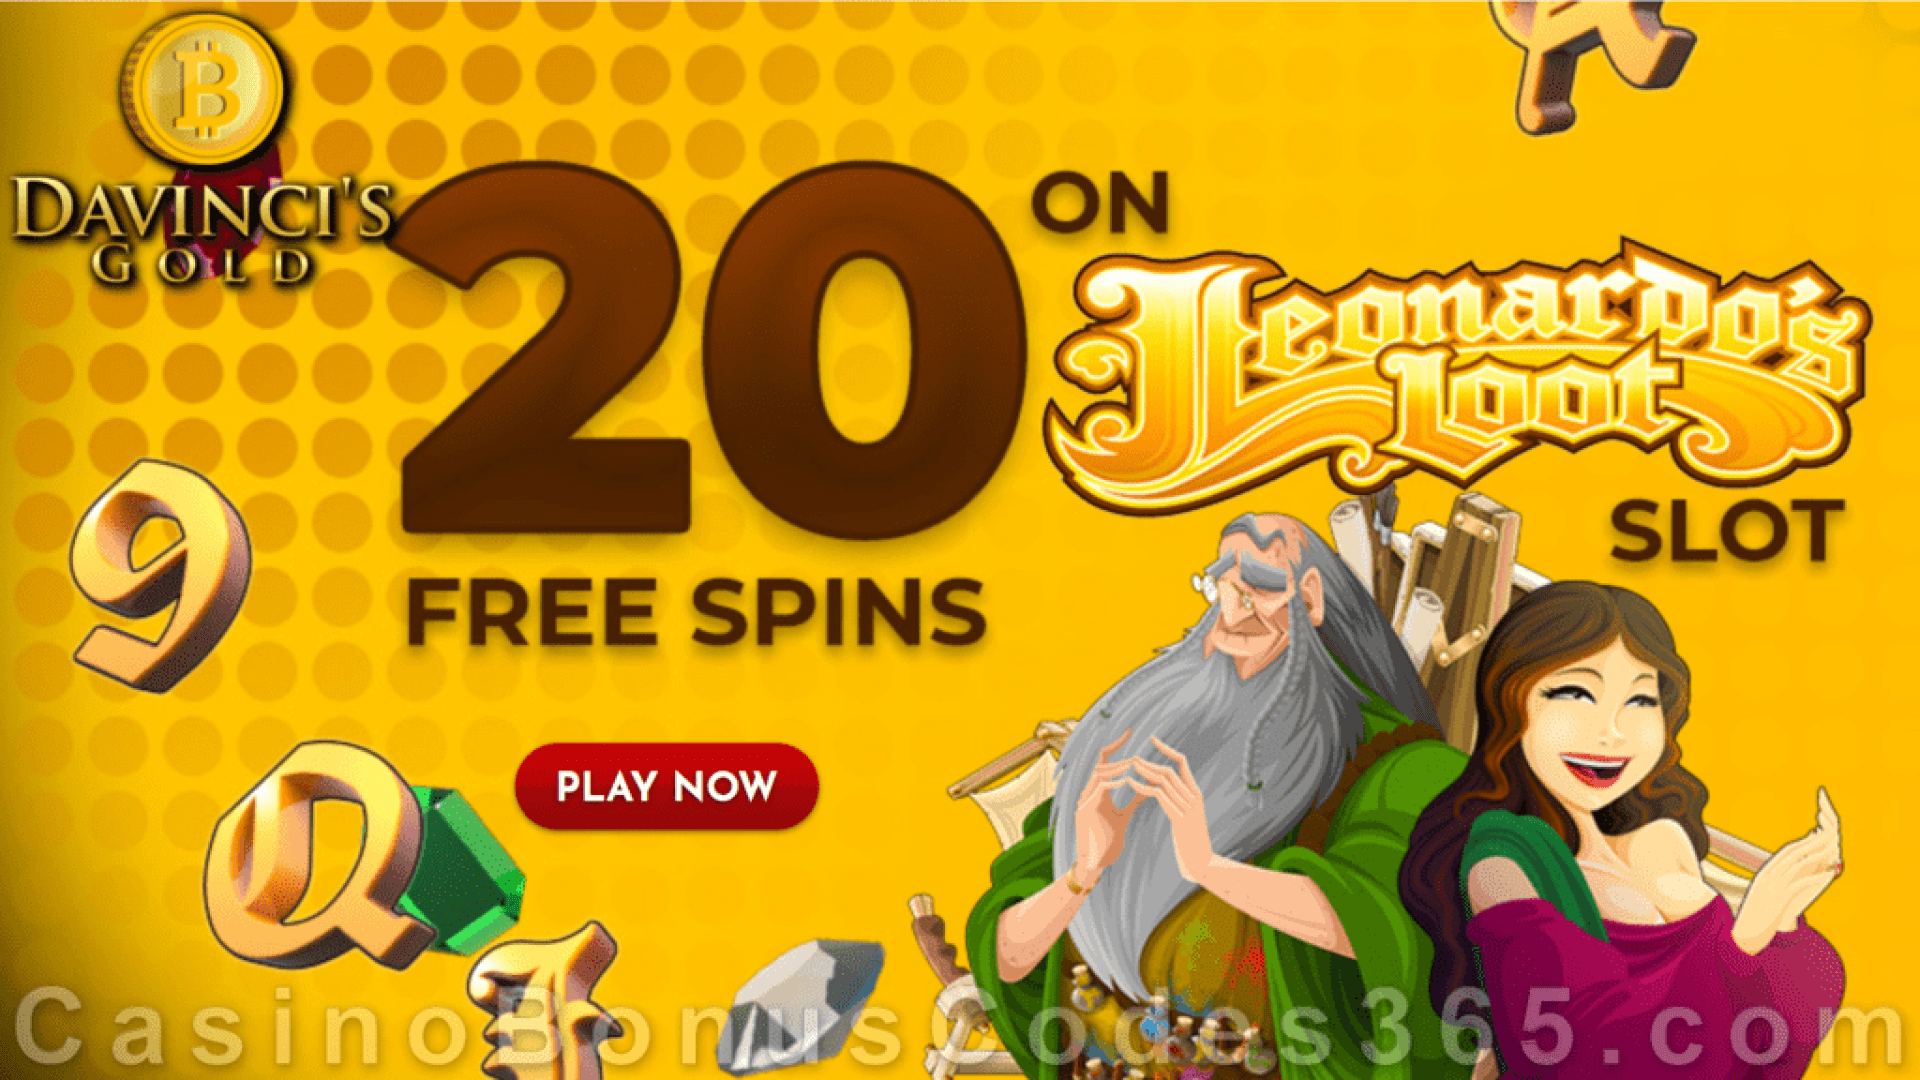 Da Vinci's Gold 20 FREE Rival Gaming Leonardo's Loot Spins No Deposit New Players Offer